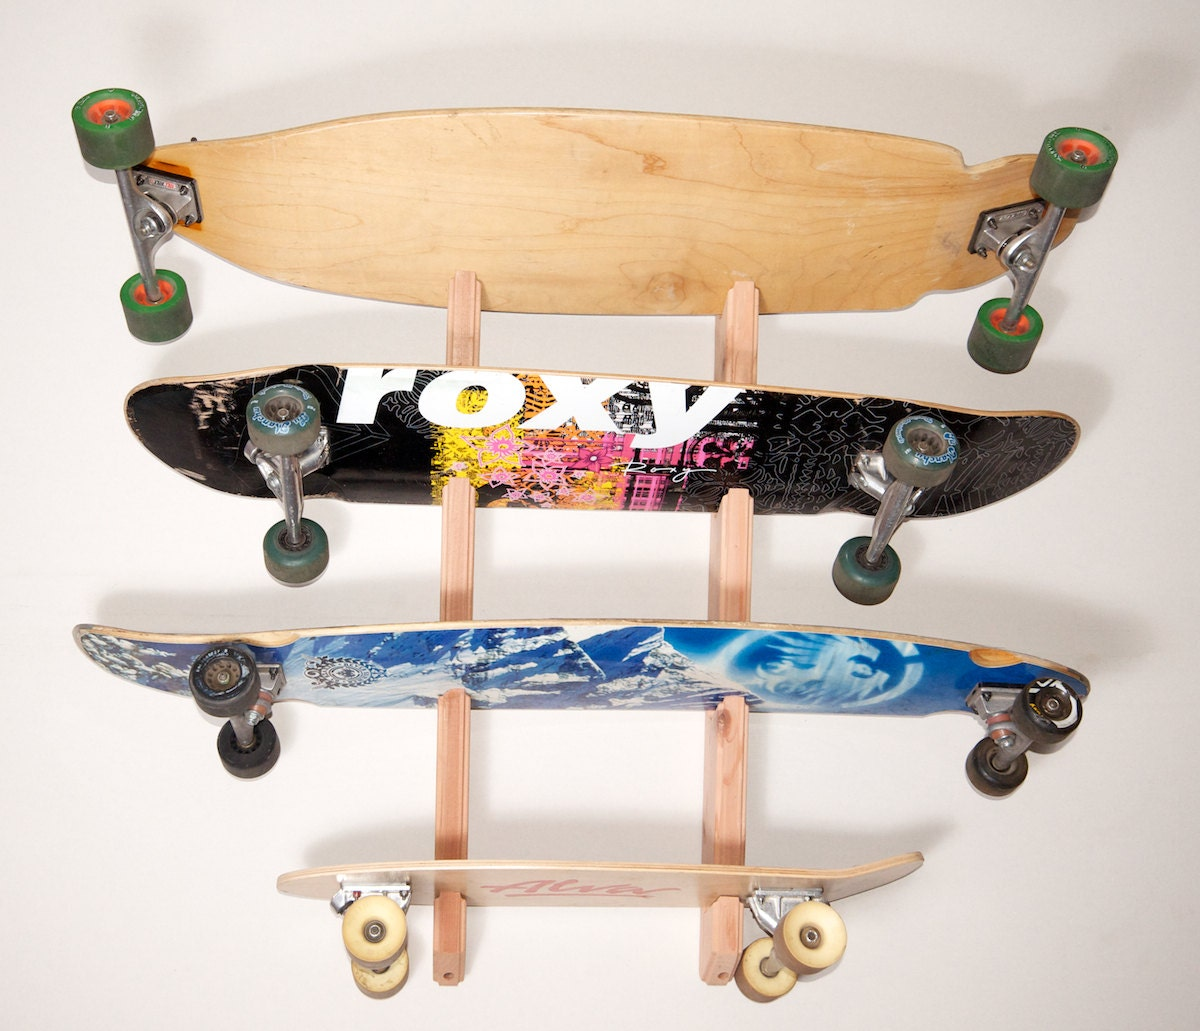 Skateboard longboard wall rack mount holds 4 boards zoom amipublicfo Image collections